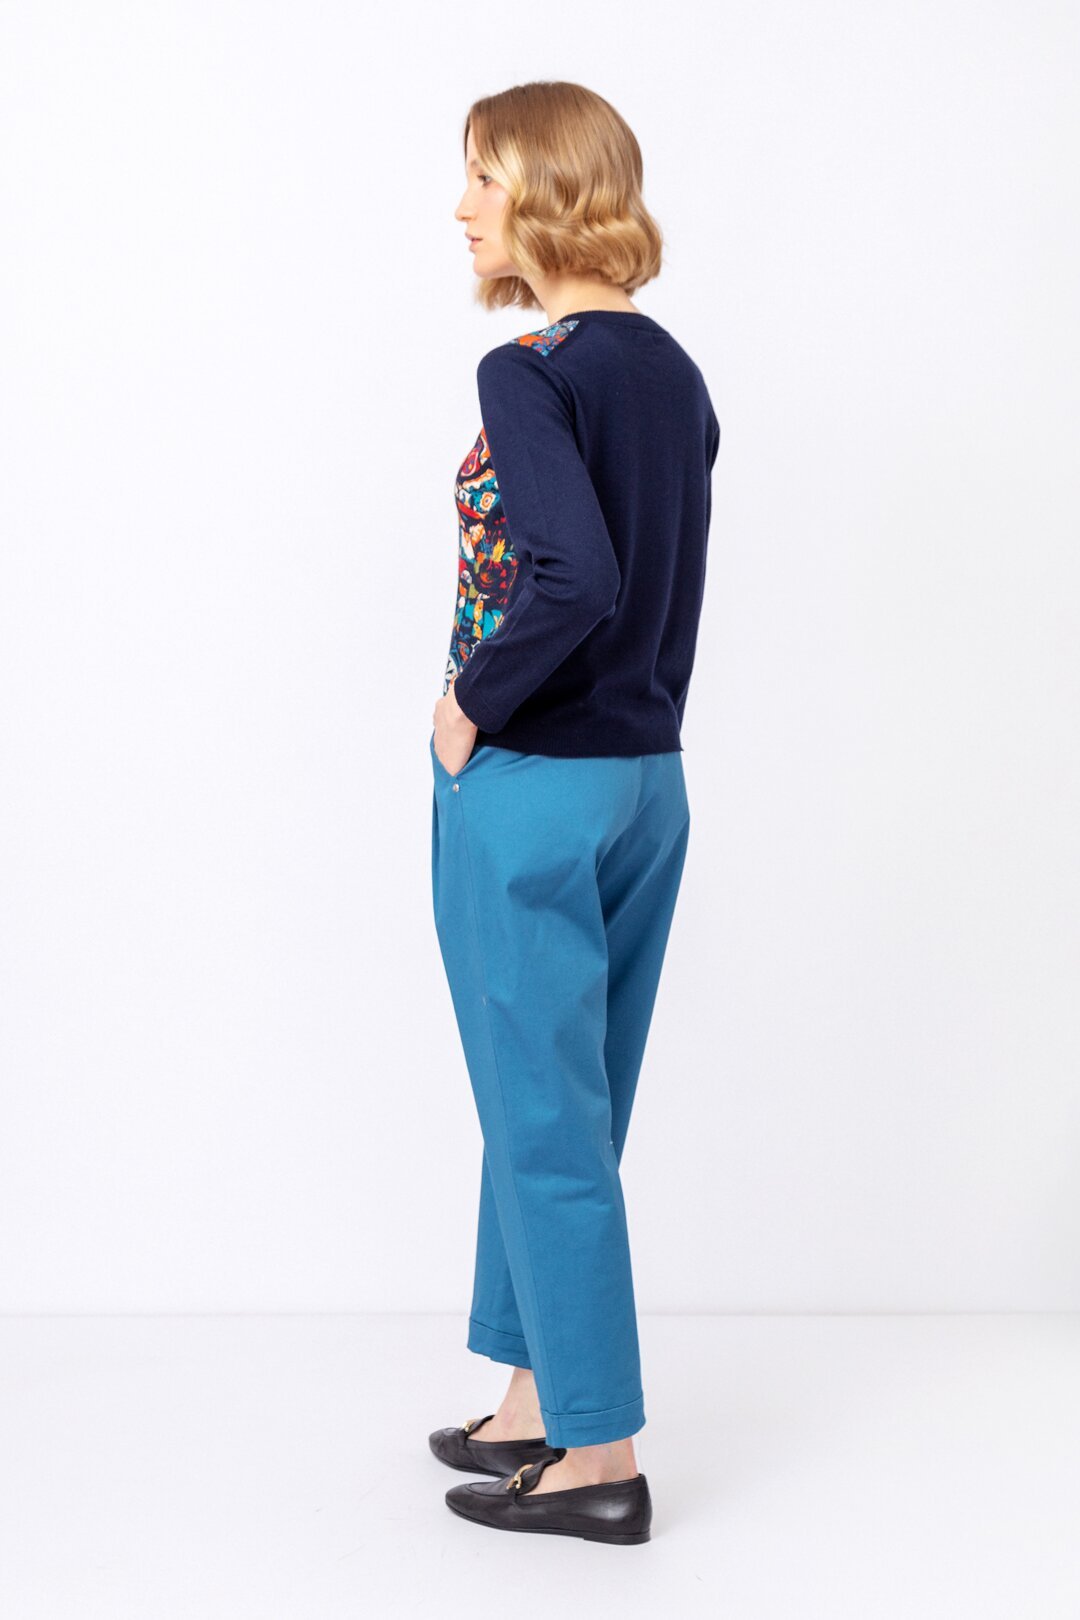 outfit-7c8a0624